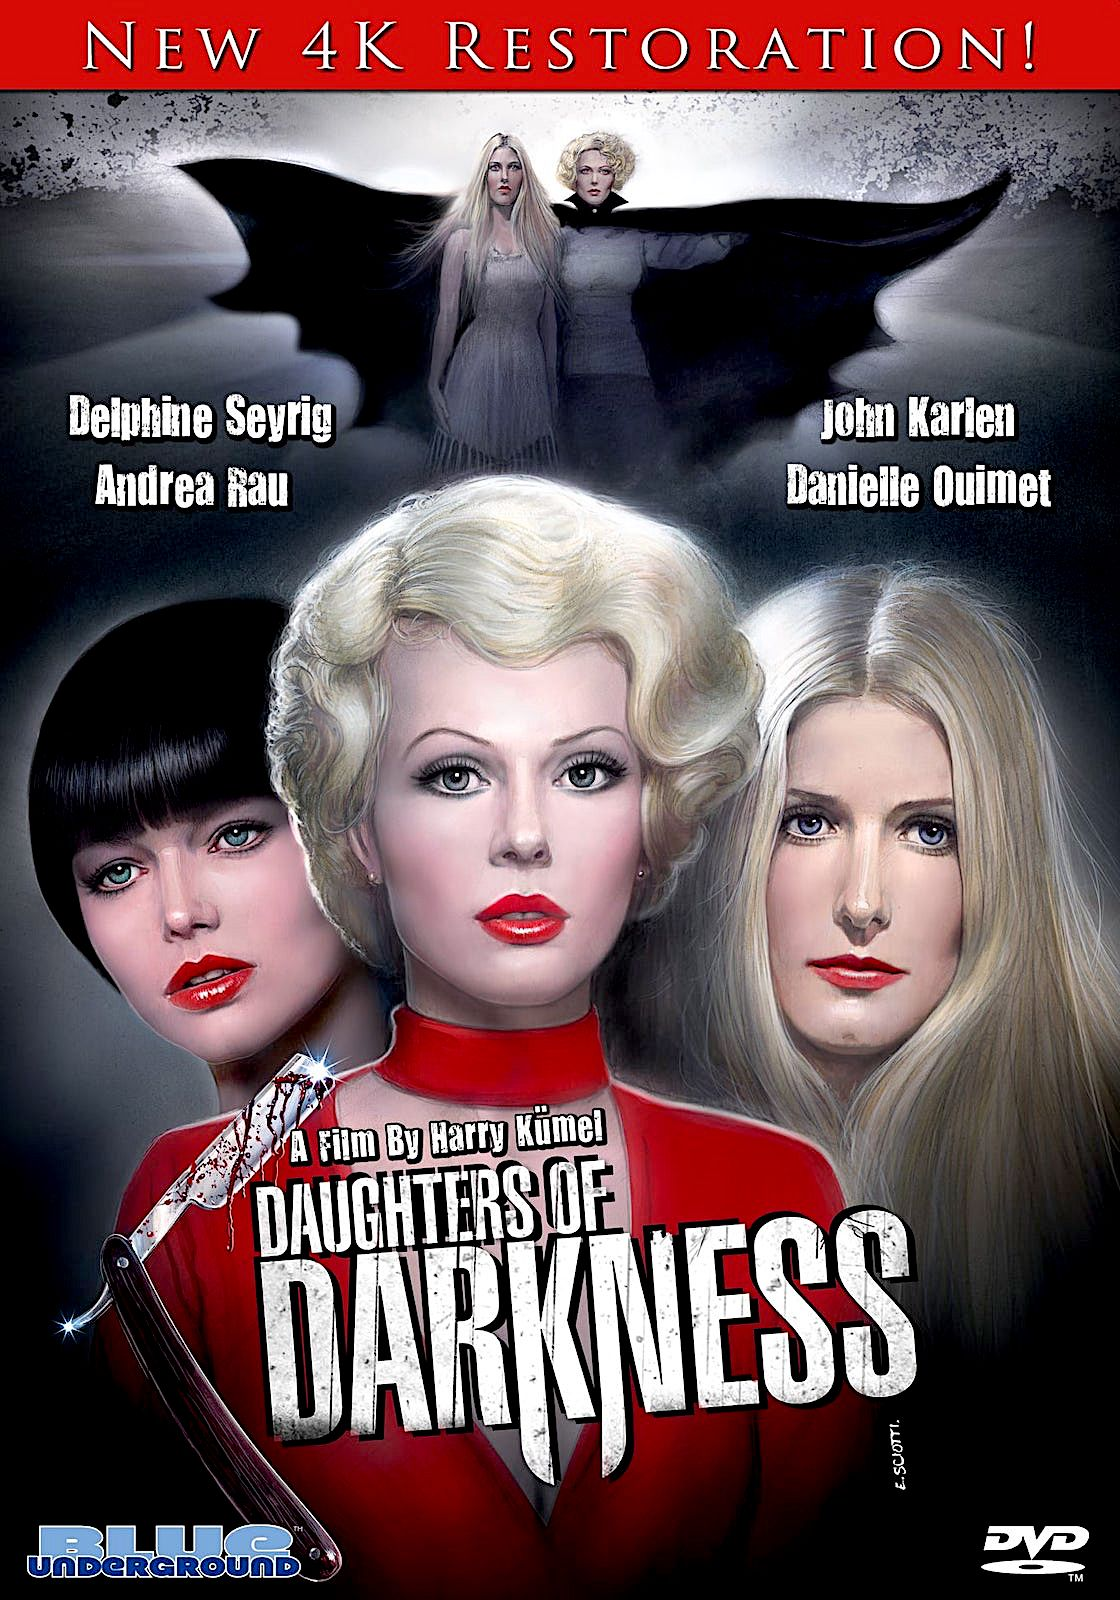 Daughters Of Darkness 4k Dvd Blue Underground In 2020 Blu Best Classic Movies Elizabeth Bathory